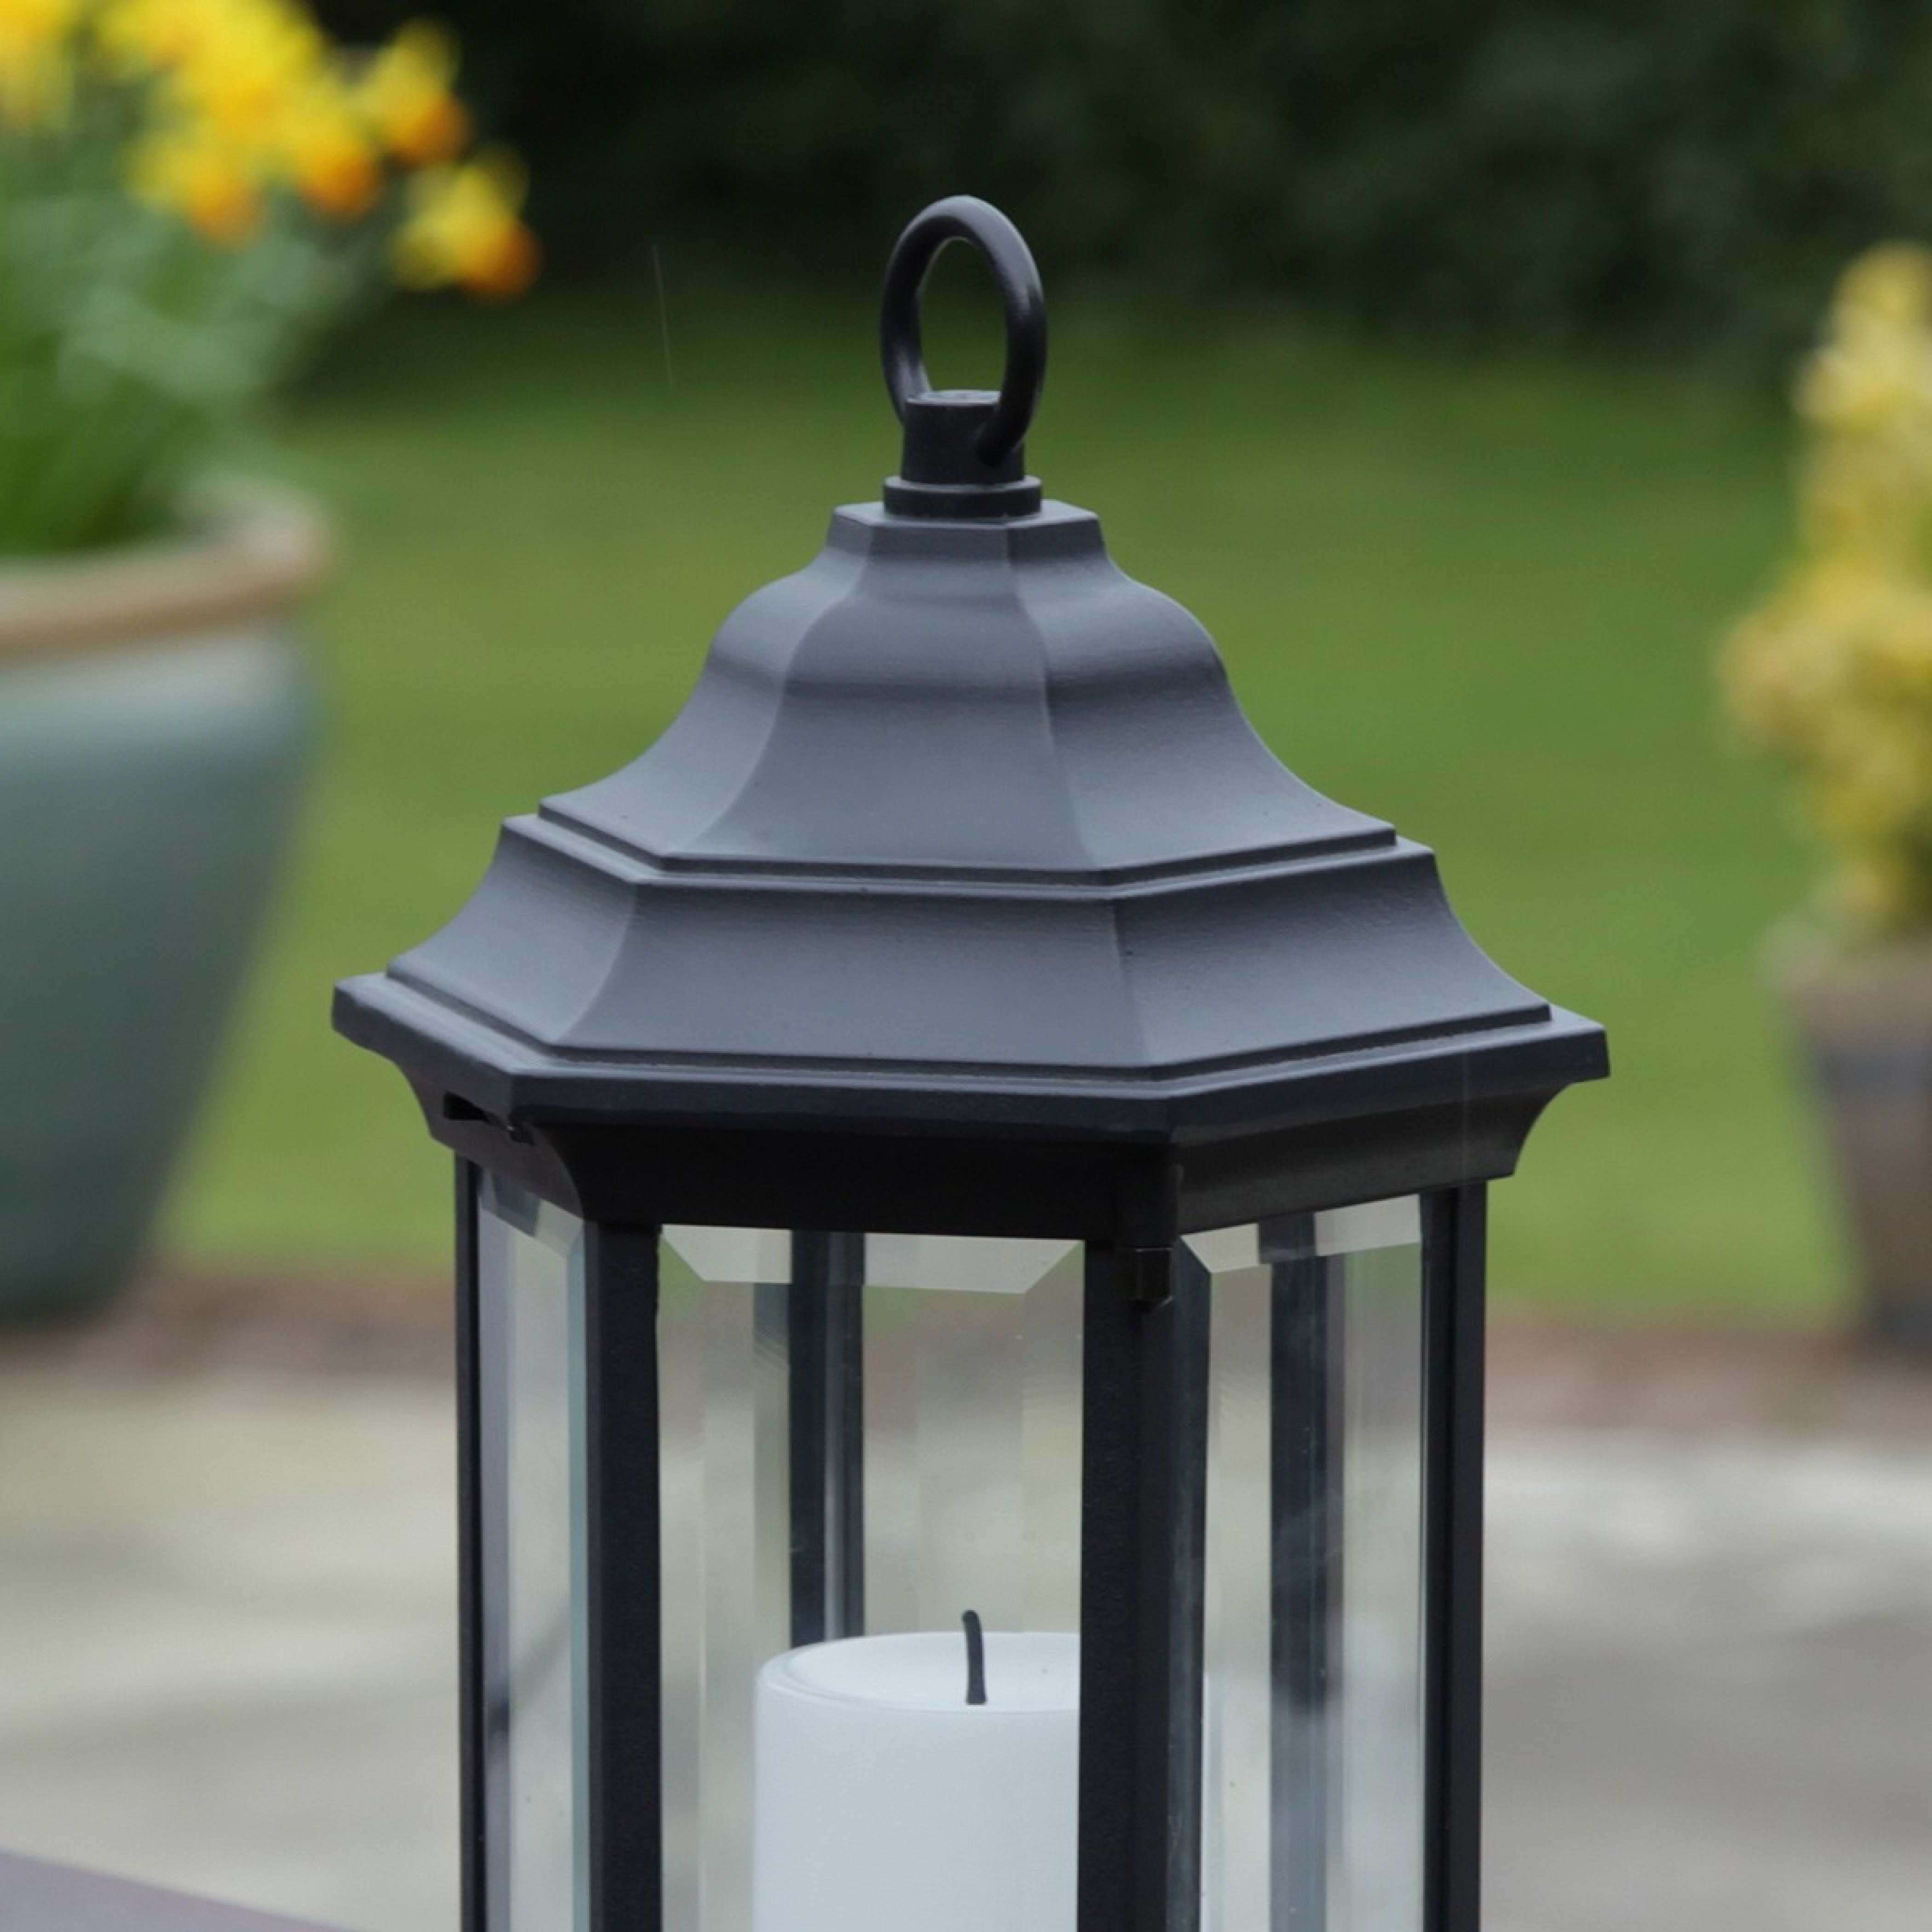 2019 Battery Operated Outdoor Lanterns With Timer – Outdoor Ideas Pertaining To Outdoor Lanterns With Timers (View 2 of 20)